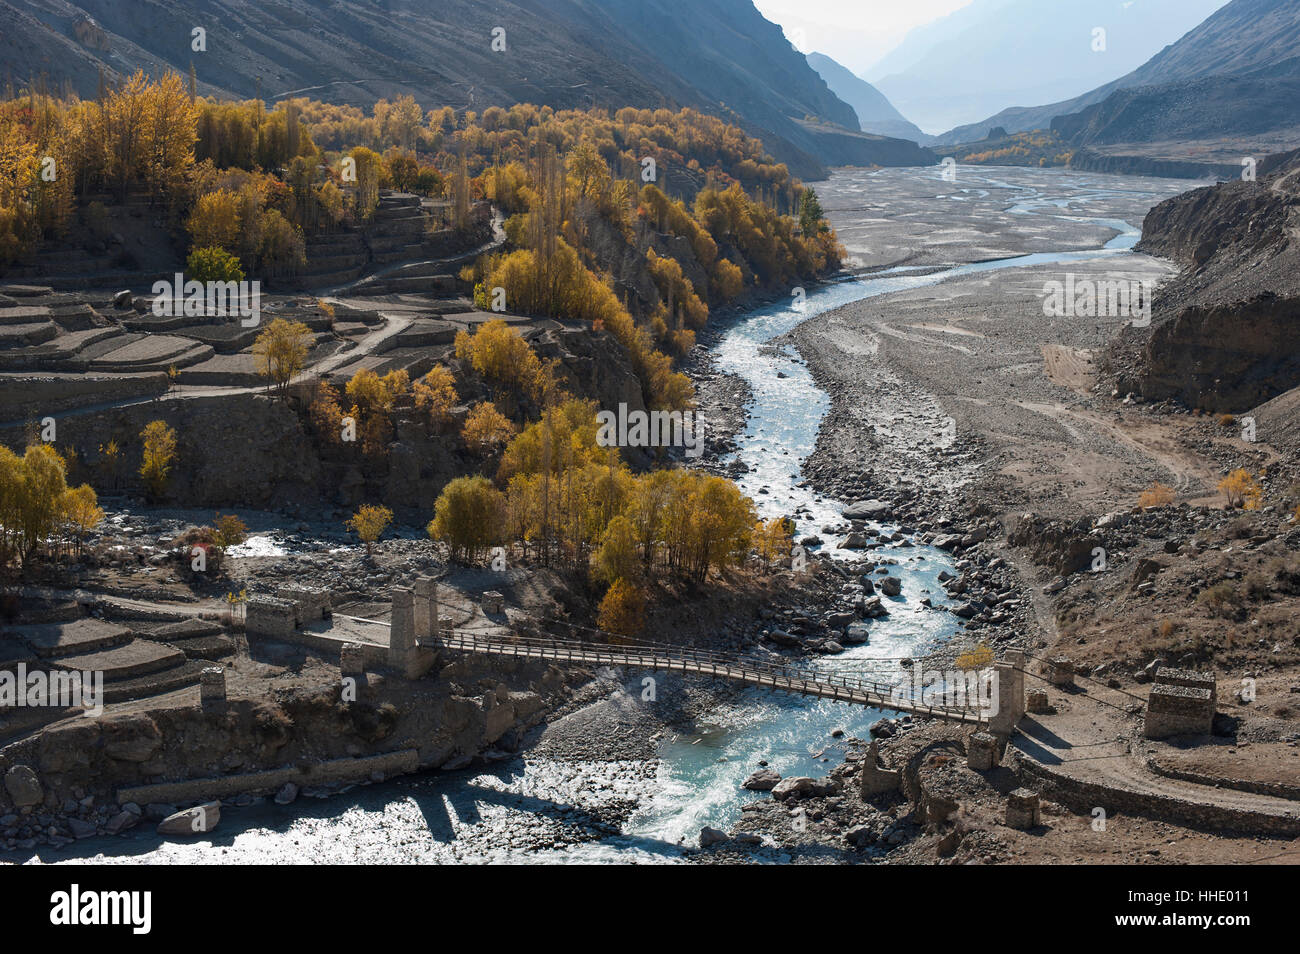 Hushe village beside a meandering river, Gilgit-Baltistan, northern Pakistan - Stock Image